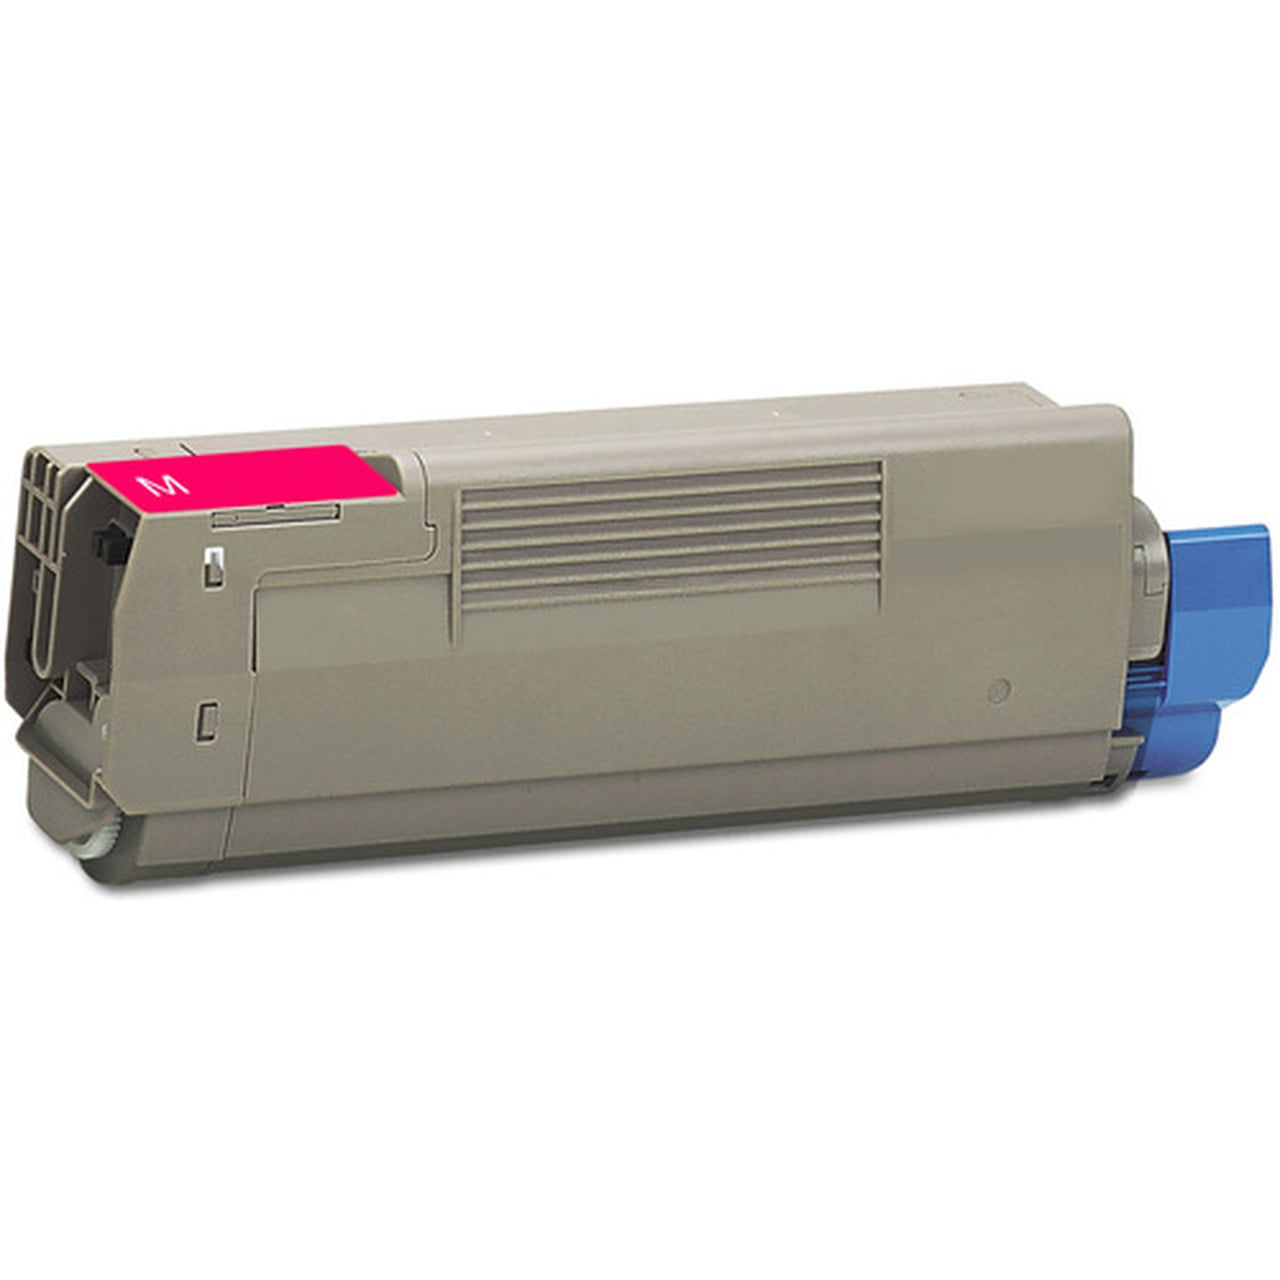 44844510 Toner Cartridge - Okidata Remanufactured (Magenta)